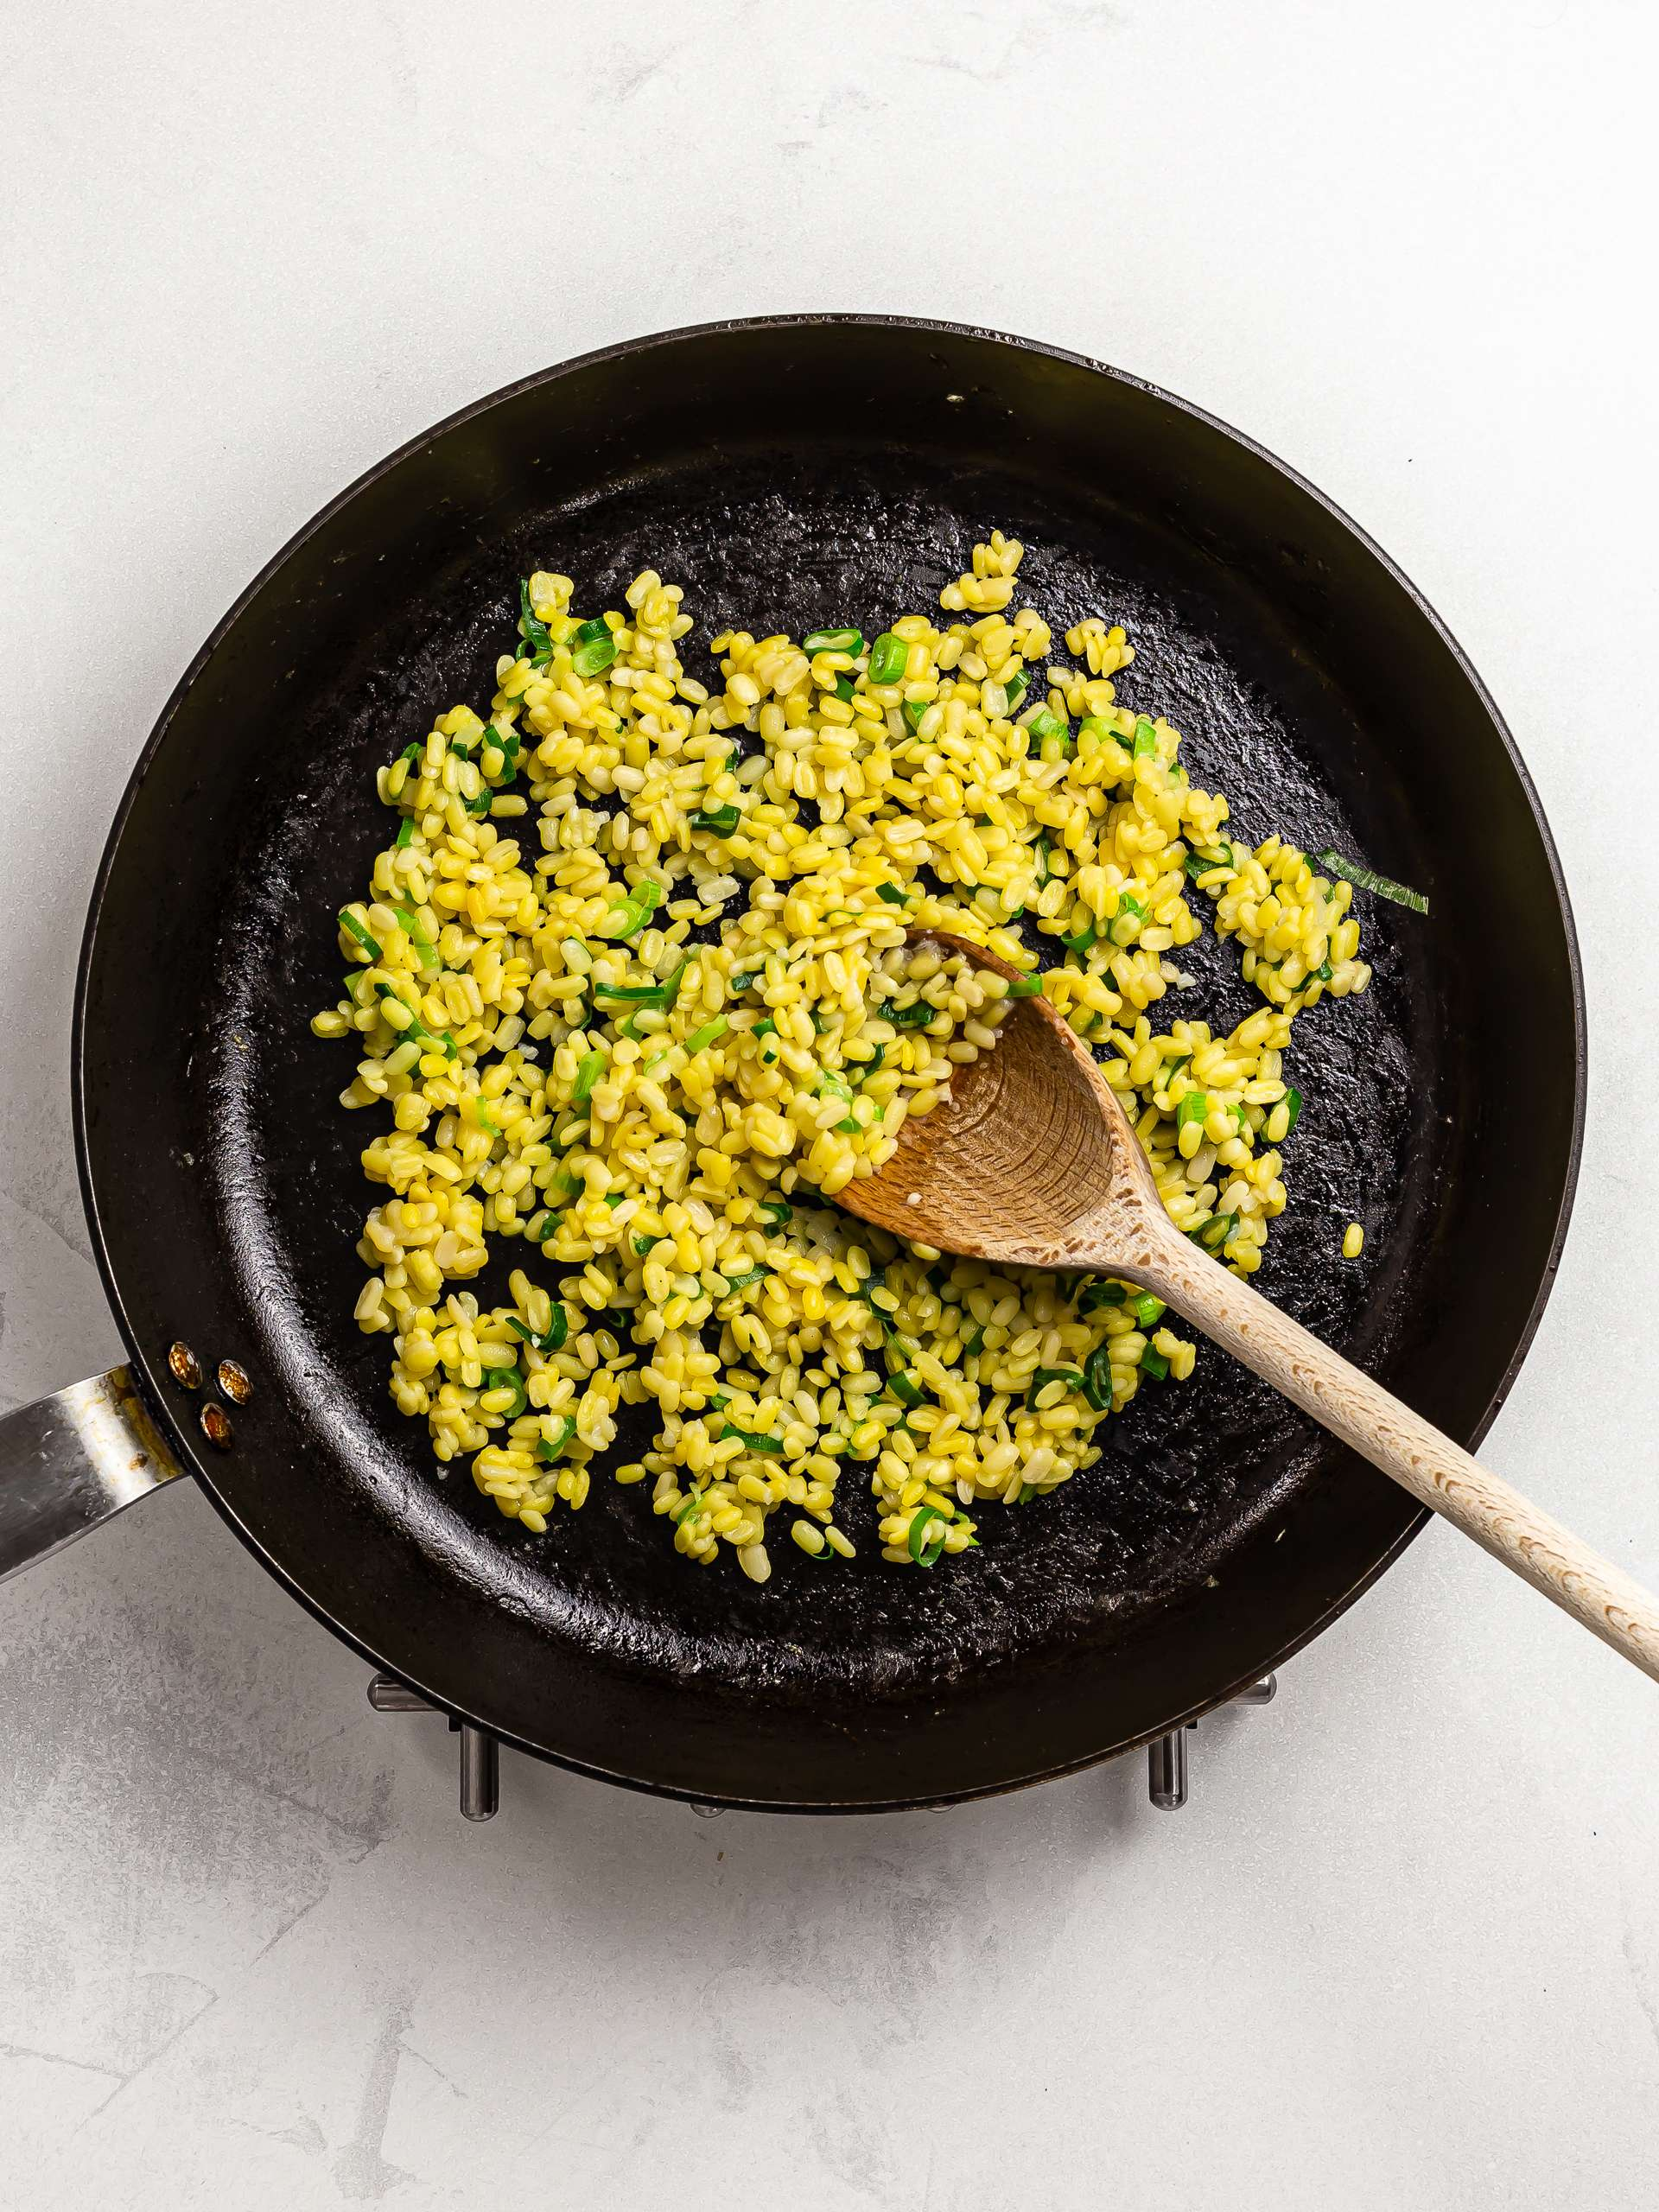 cooked mung dal in a skillet